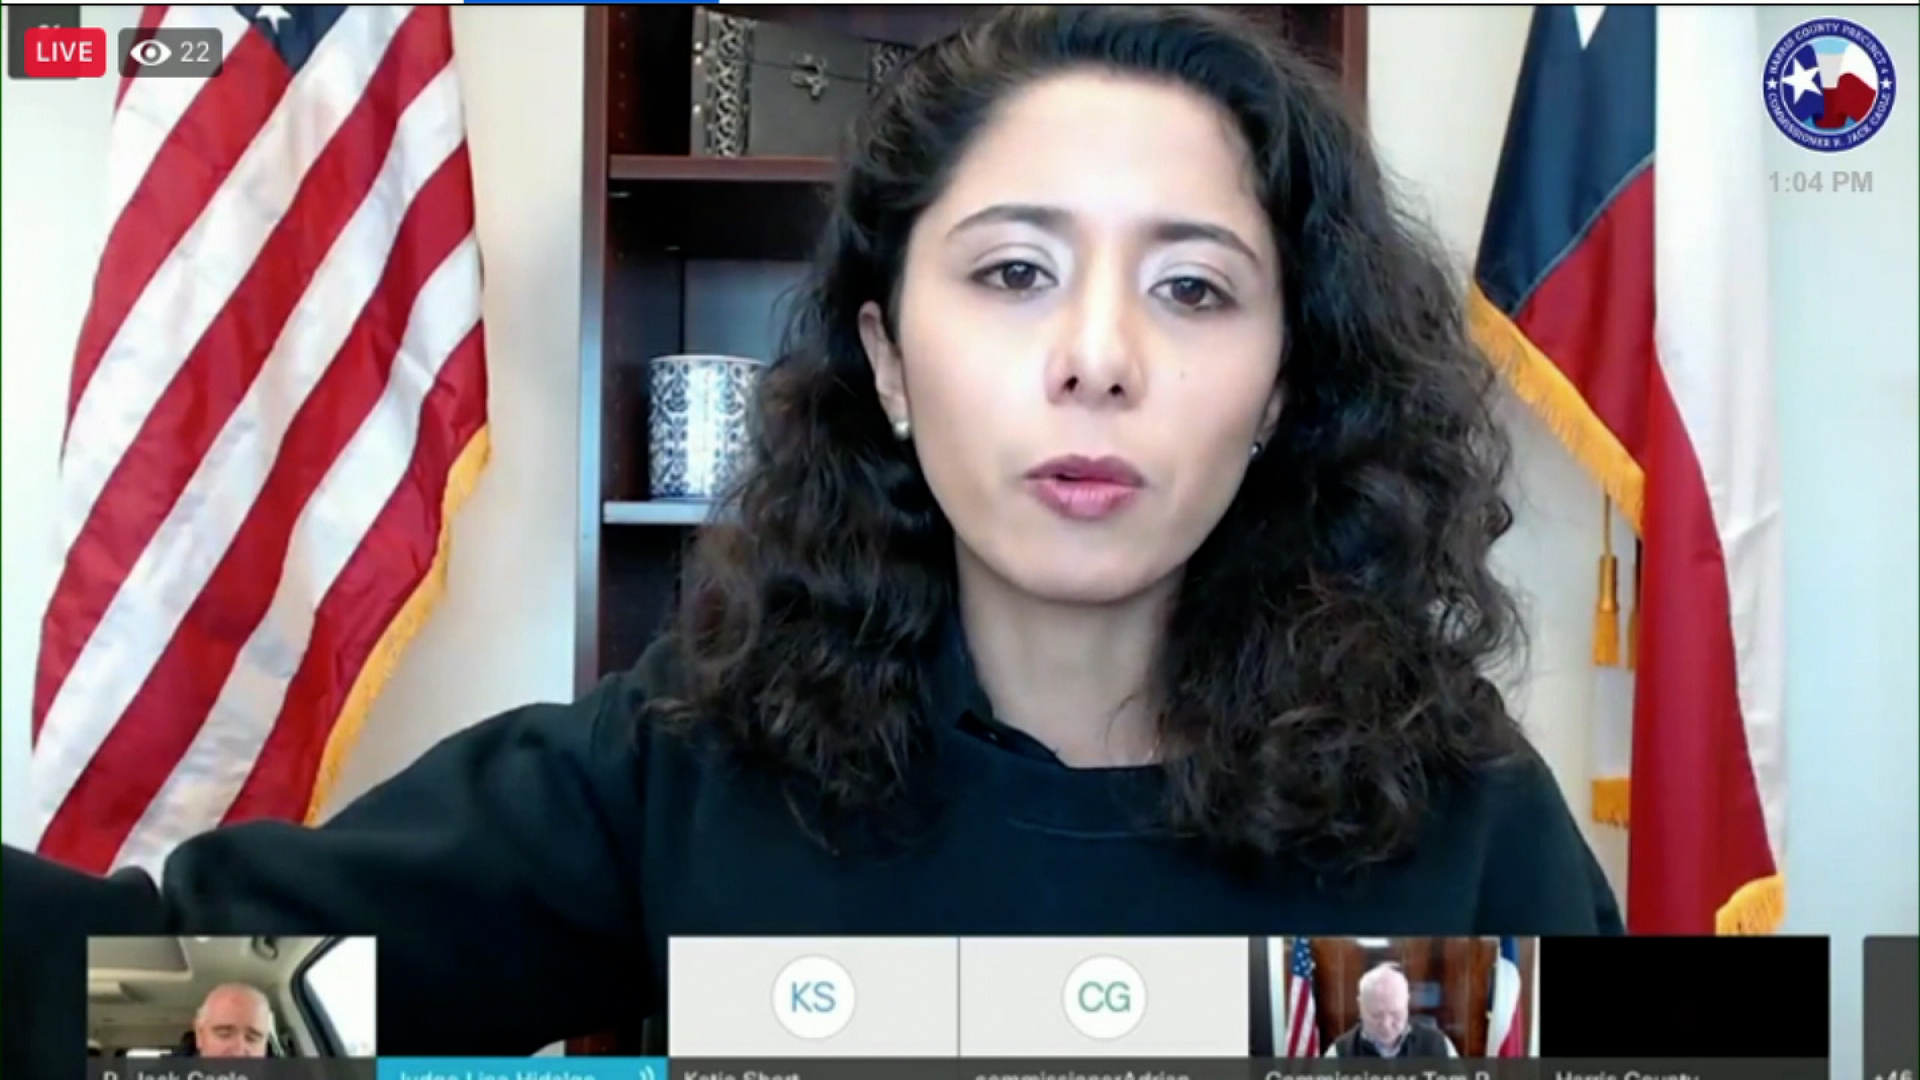 Harris County Judge Lina Hidalgo speaks during a virtual call with other county officials on February 19.